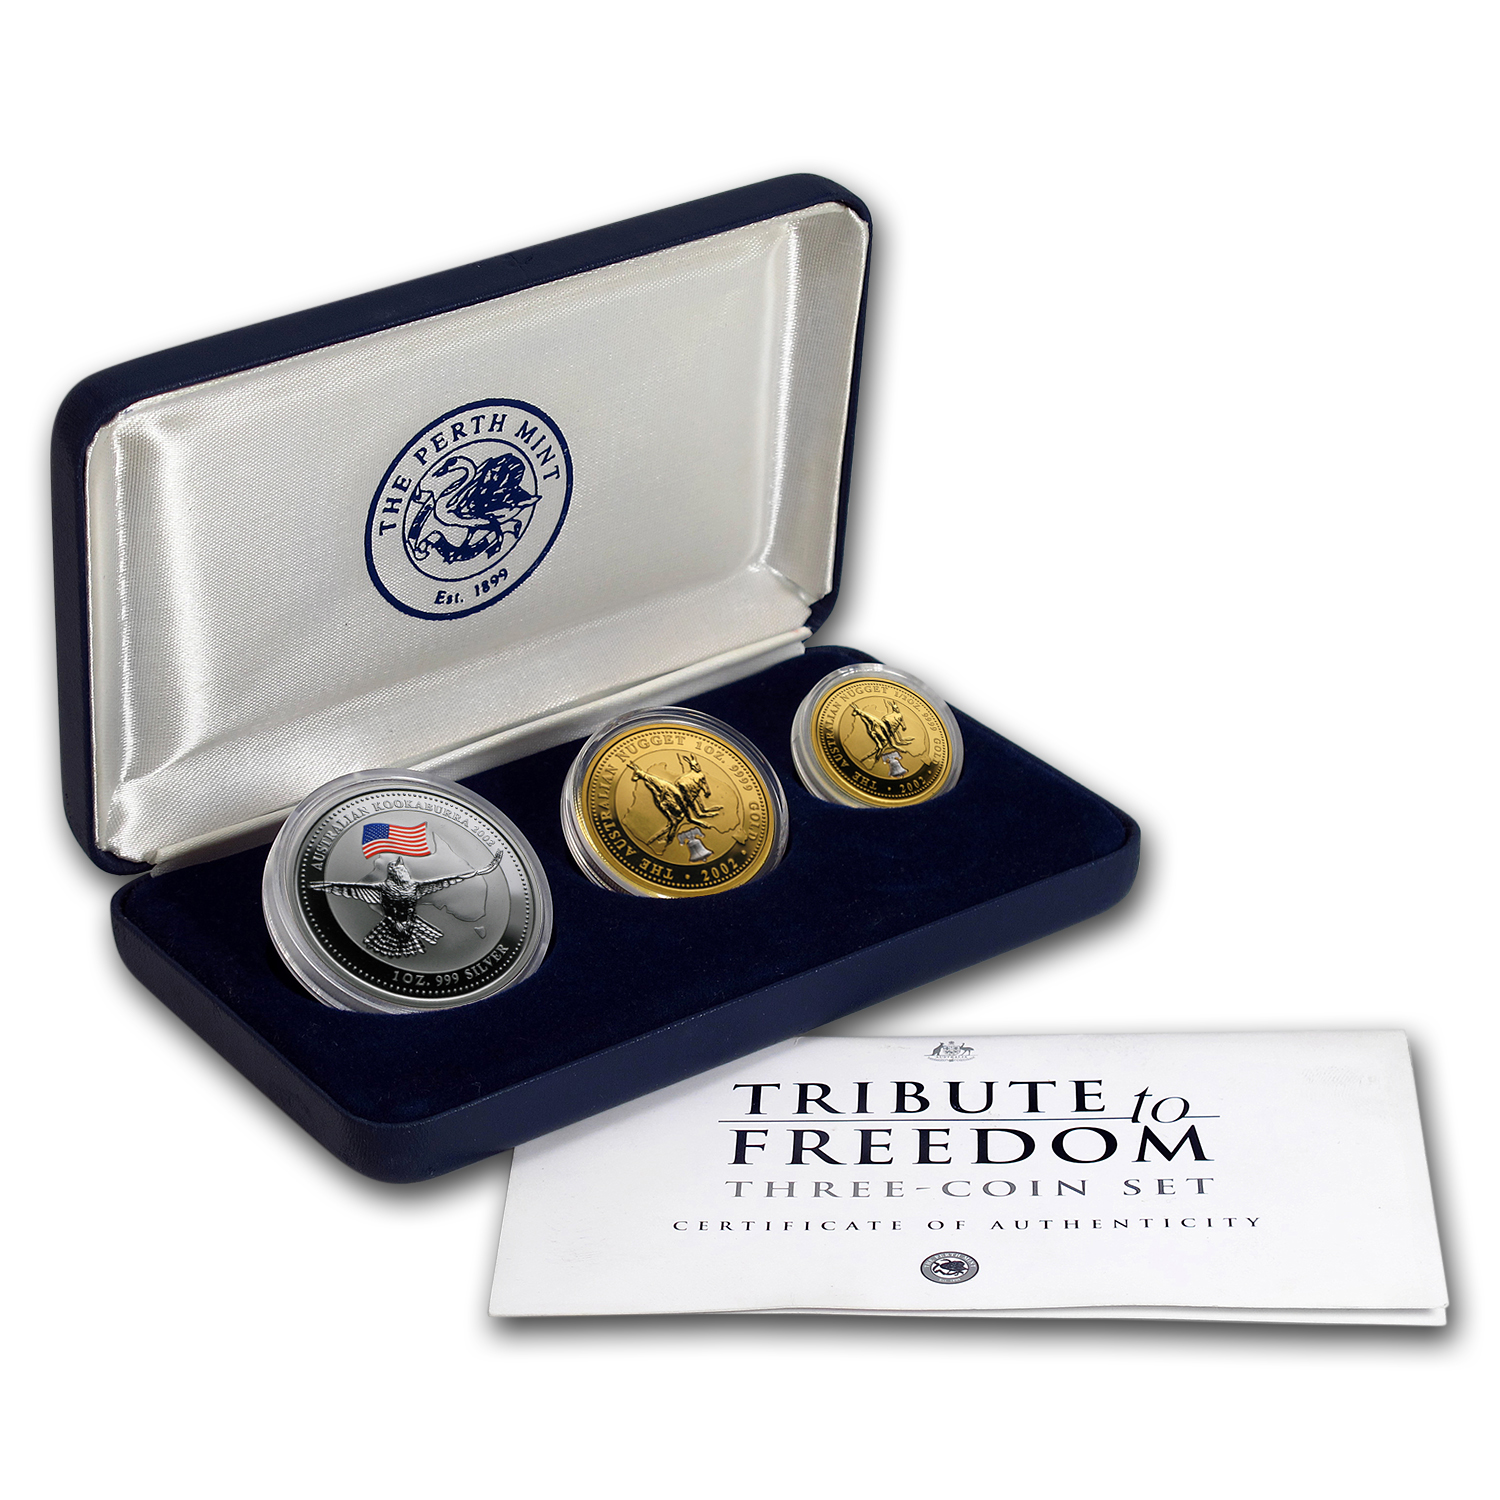 2002 Perth Mint 3-Coin Tribute to Freedom Proof Set